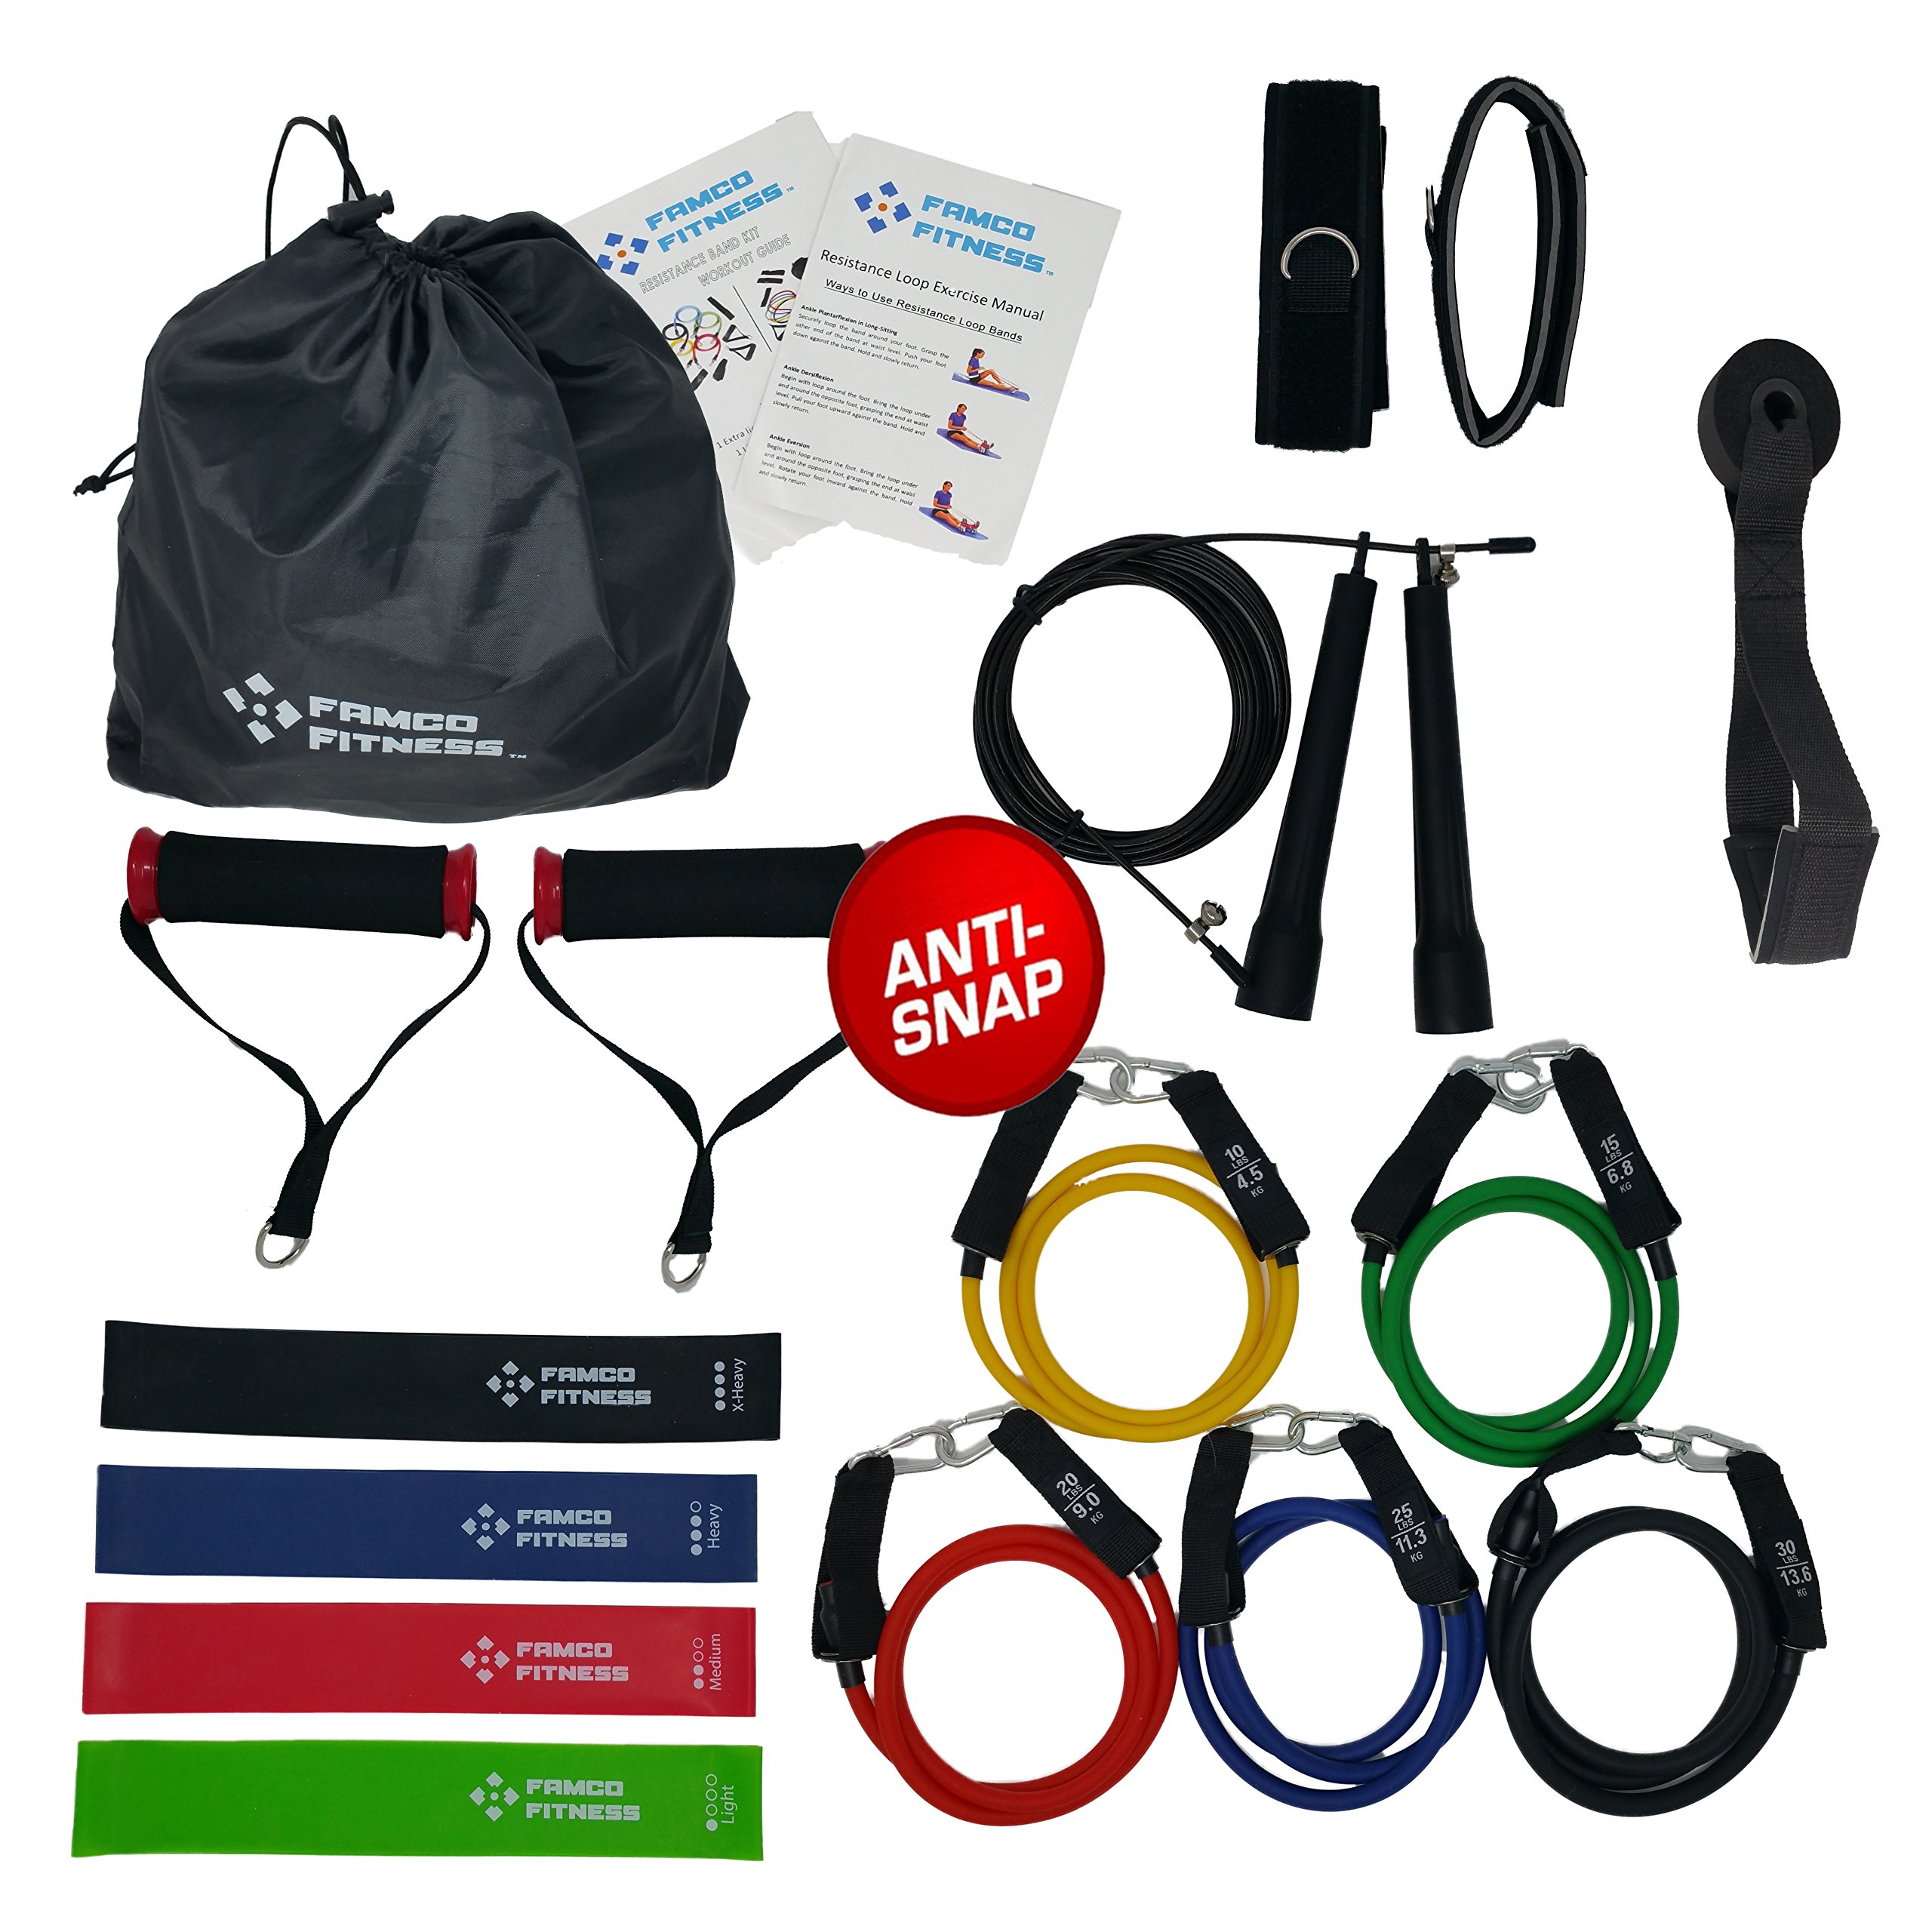 FAMCO FITNESS 17 Pc Heavy Duty Resistance Bands Set Home Gym With Speed Jump Rope For Men And Women | 5 Tube Exercise Bands | 4 Flat Fitness Bands | Carry Bag | Crossfit WOD Rehab | Exercise Charts